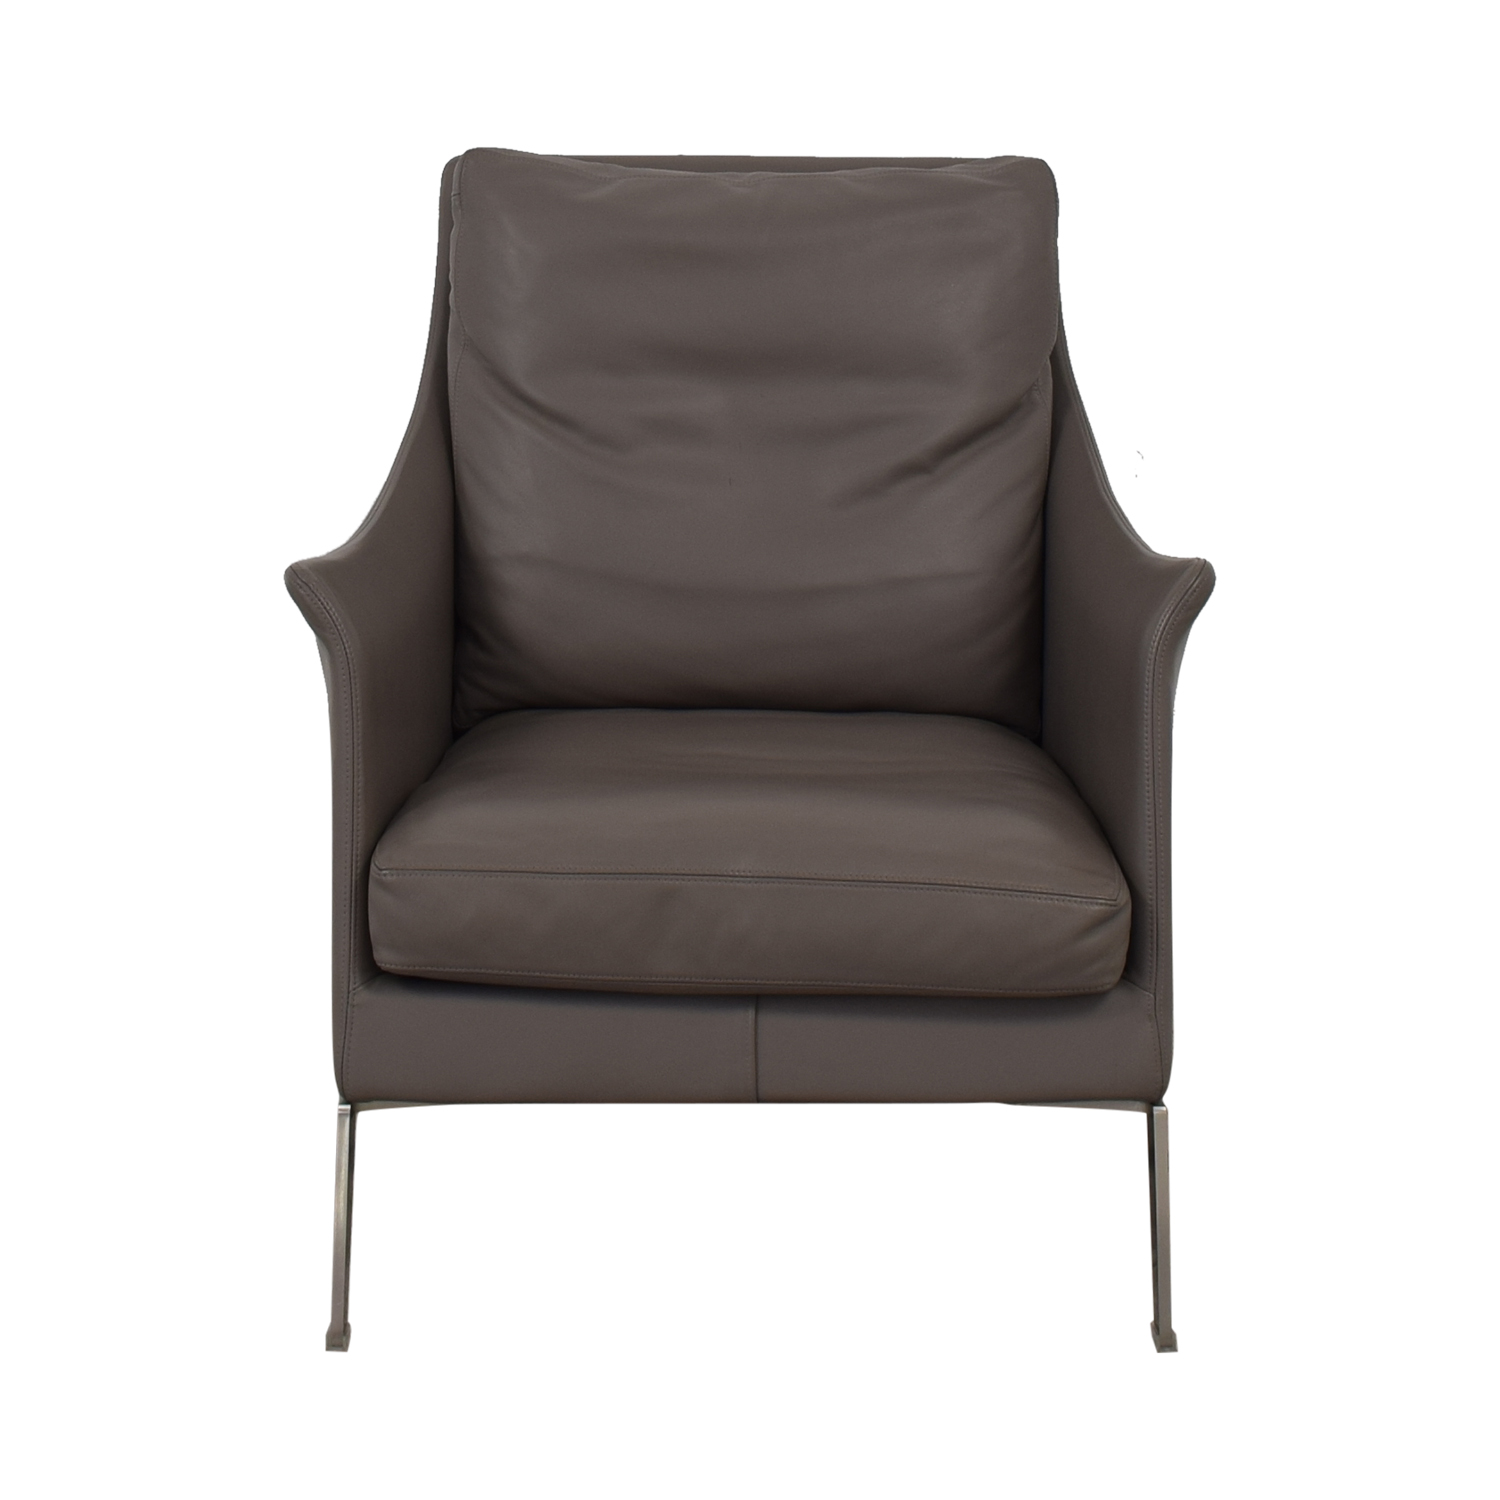 Flexform Flexform Boss Armchair Chairs